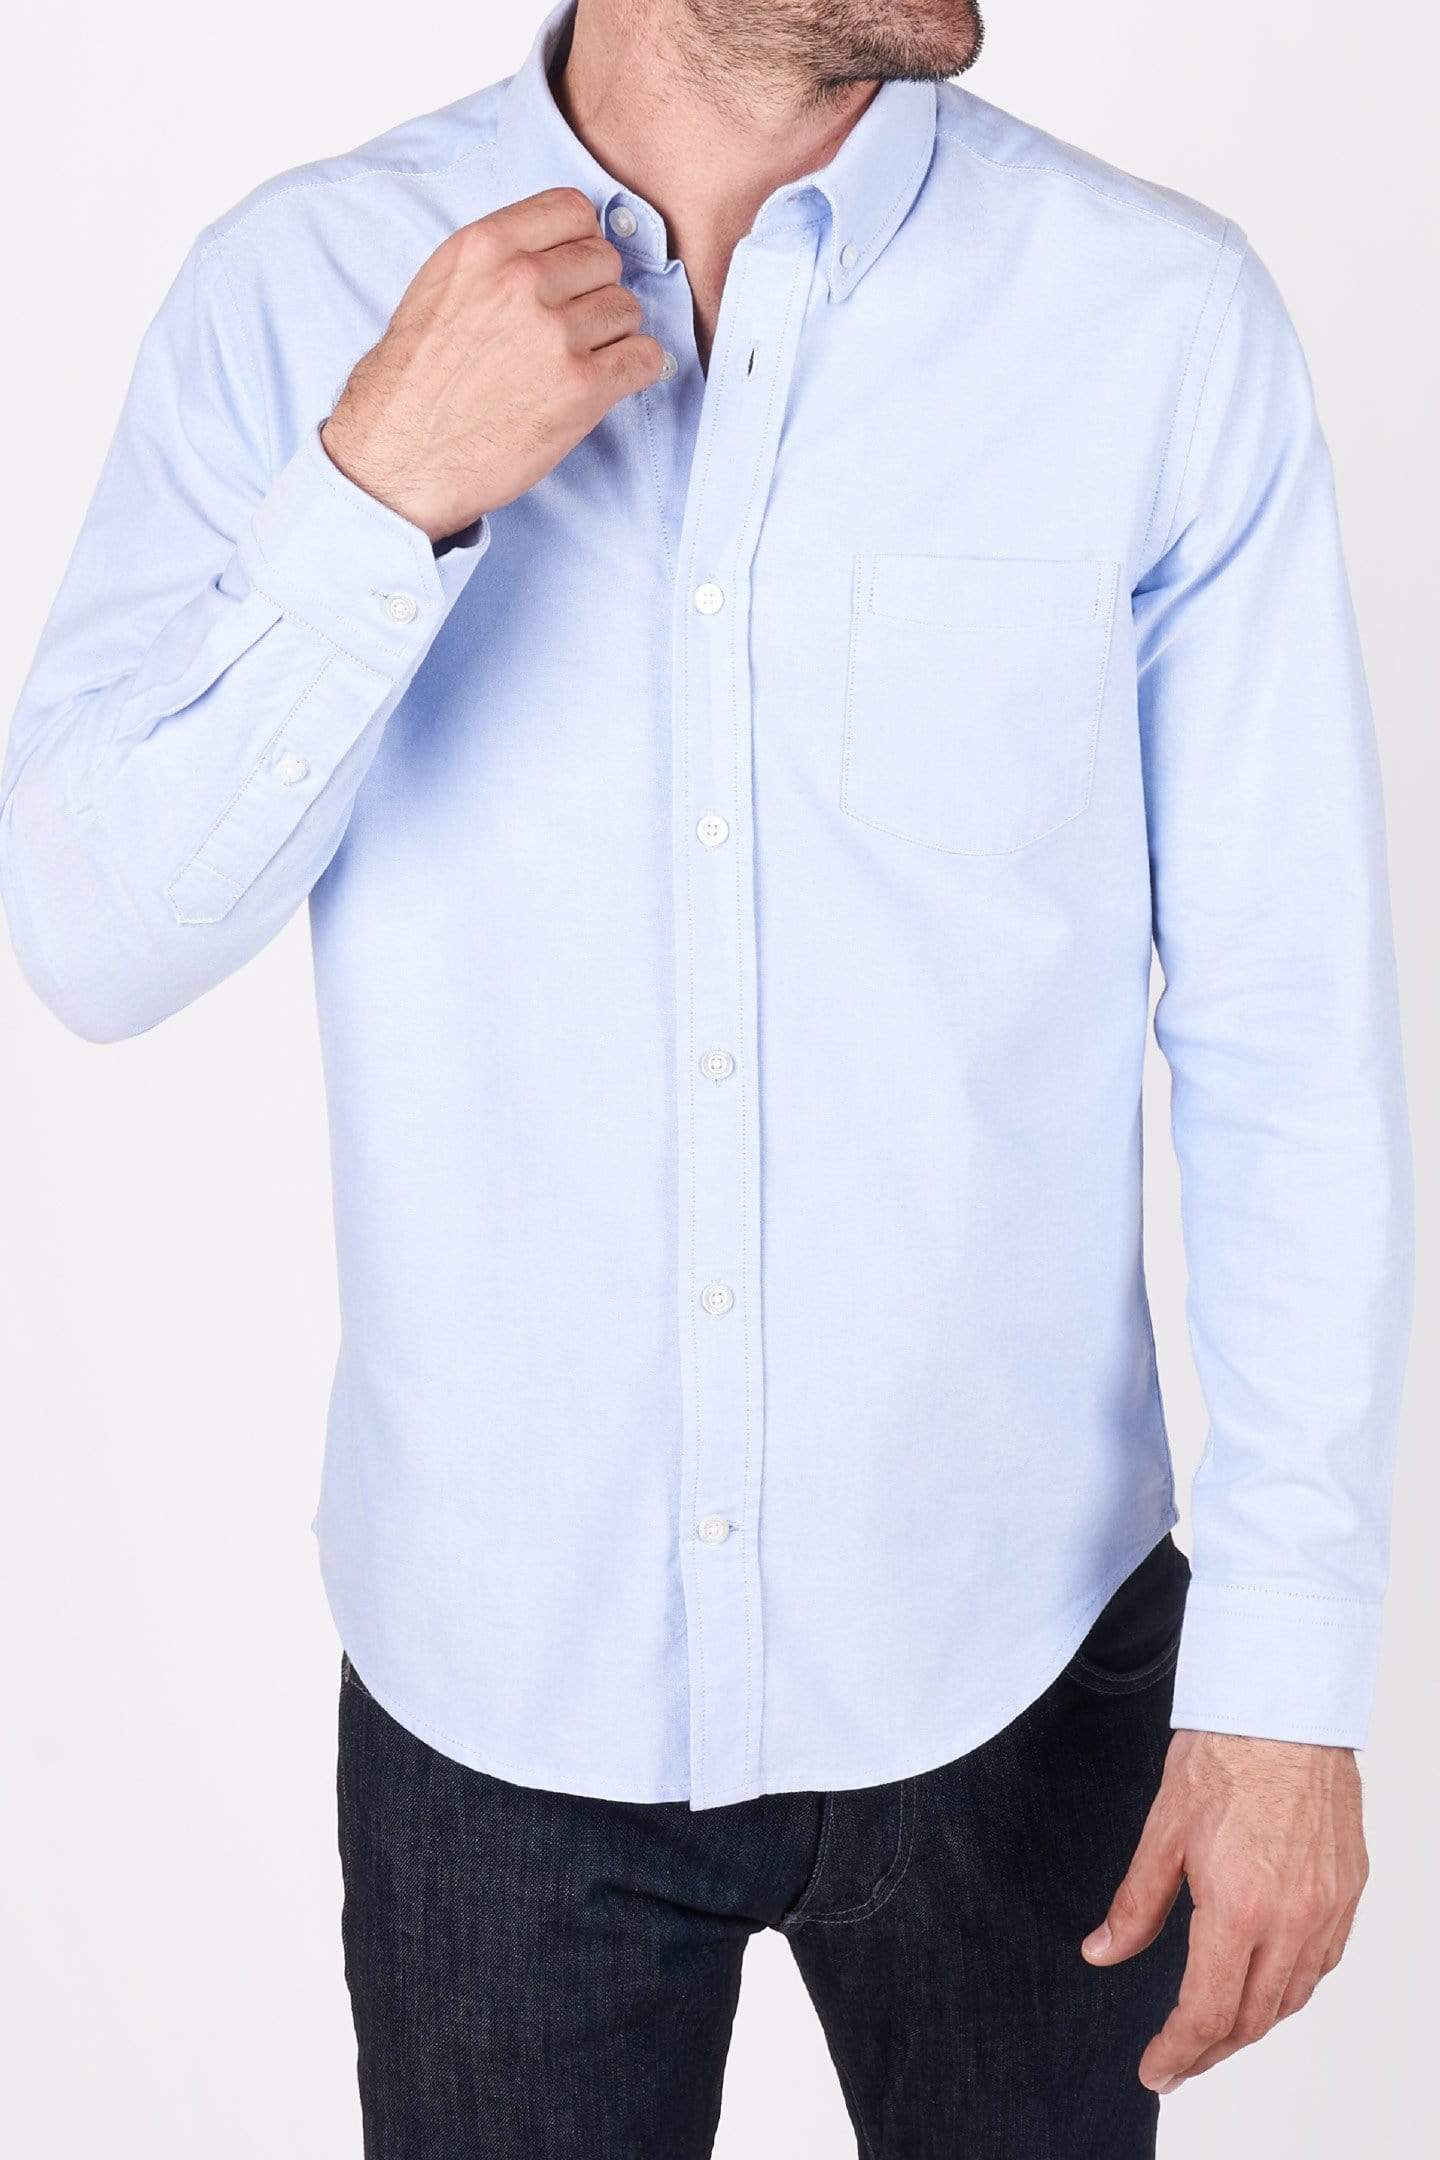 Buy Blue Oxford Button-Down Shirt for Short Men | Ash & Erie   Everyday Shirts